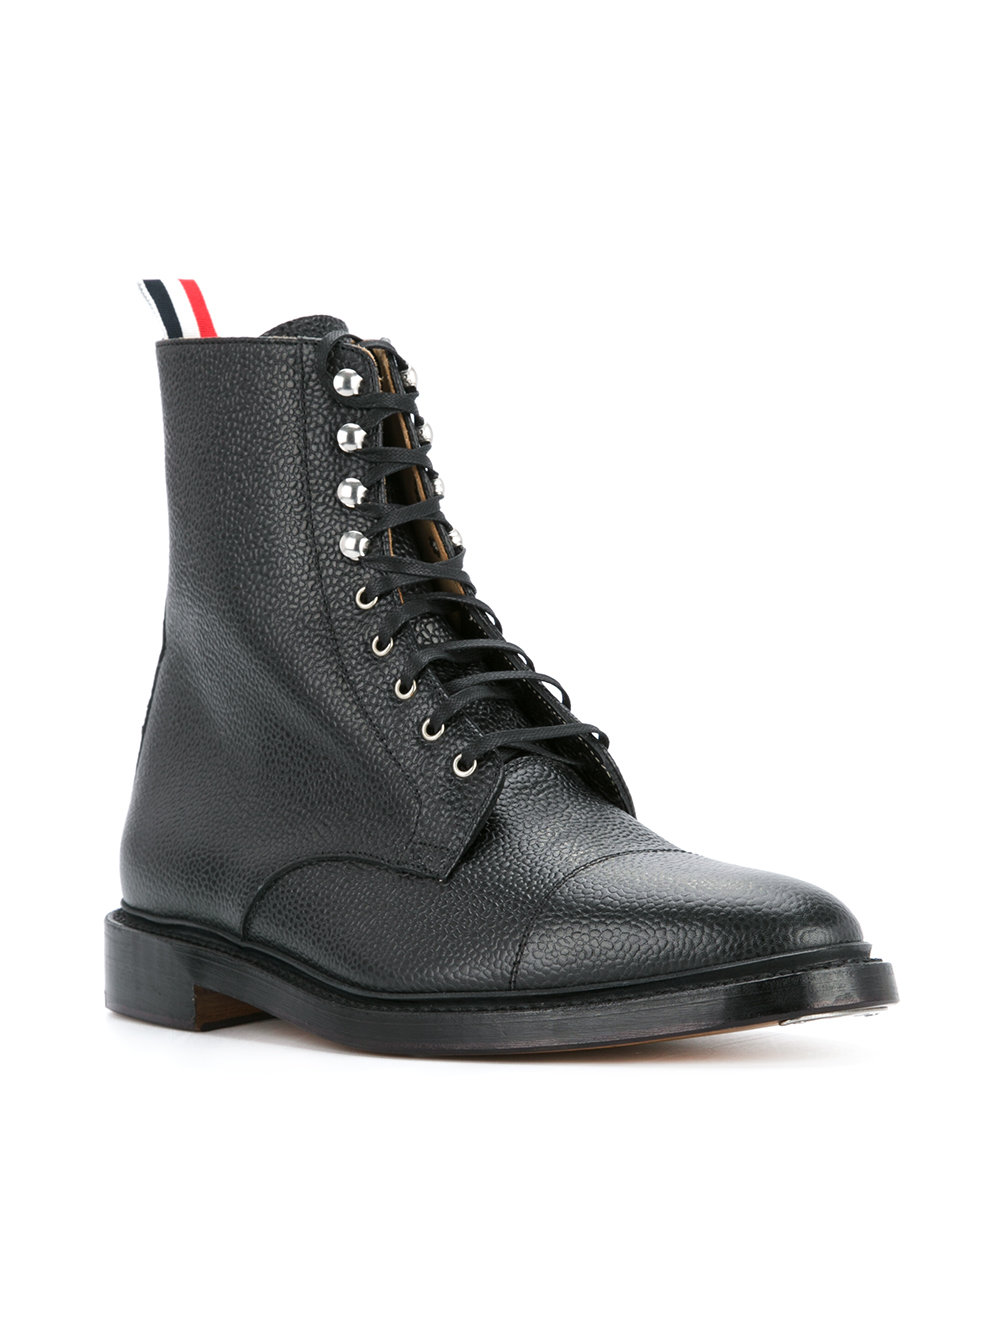 Thom Browne   Military Boot